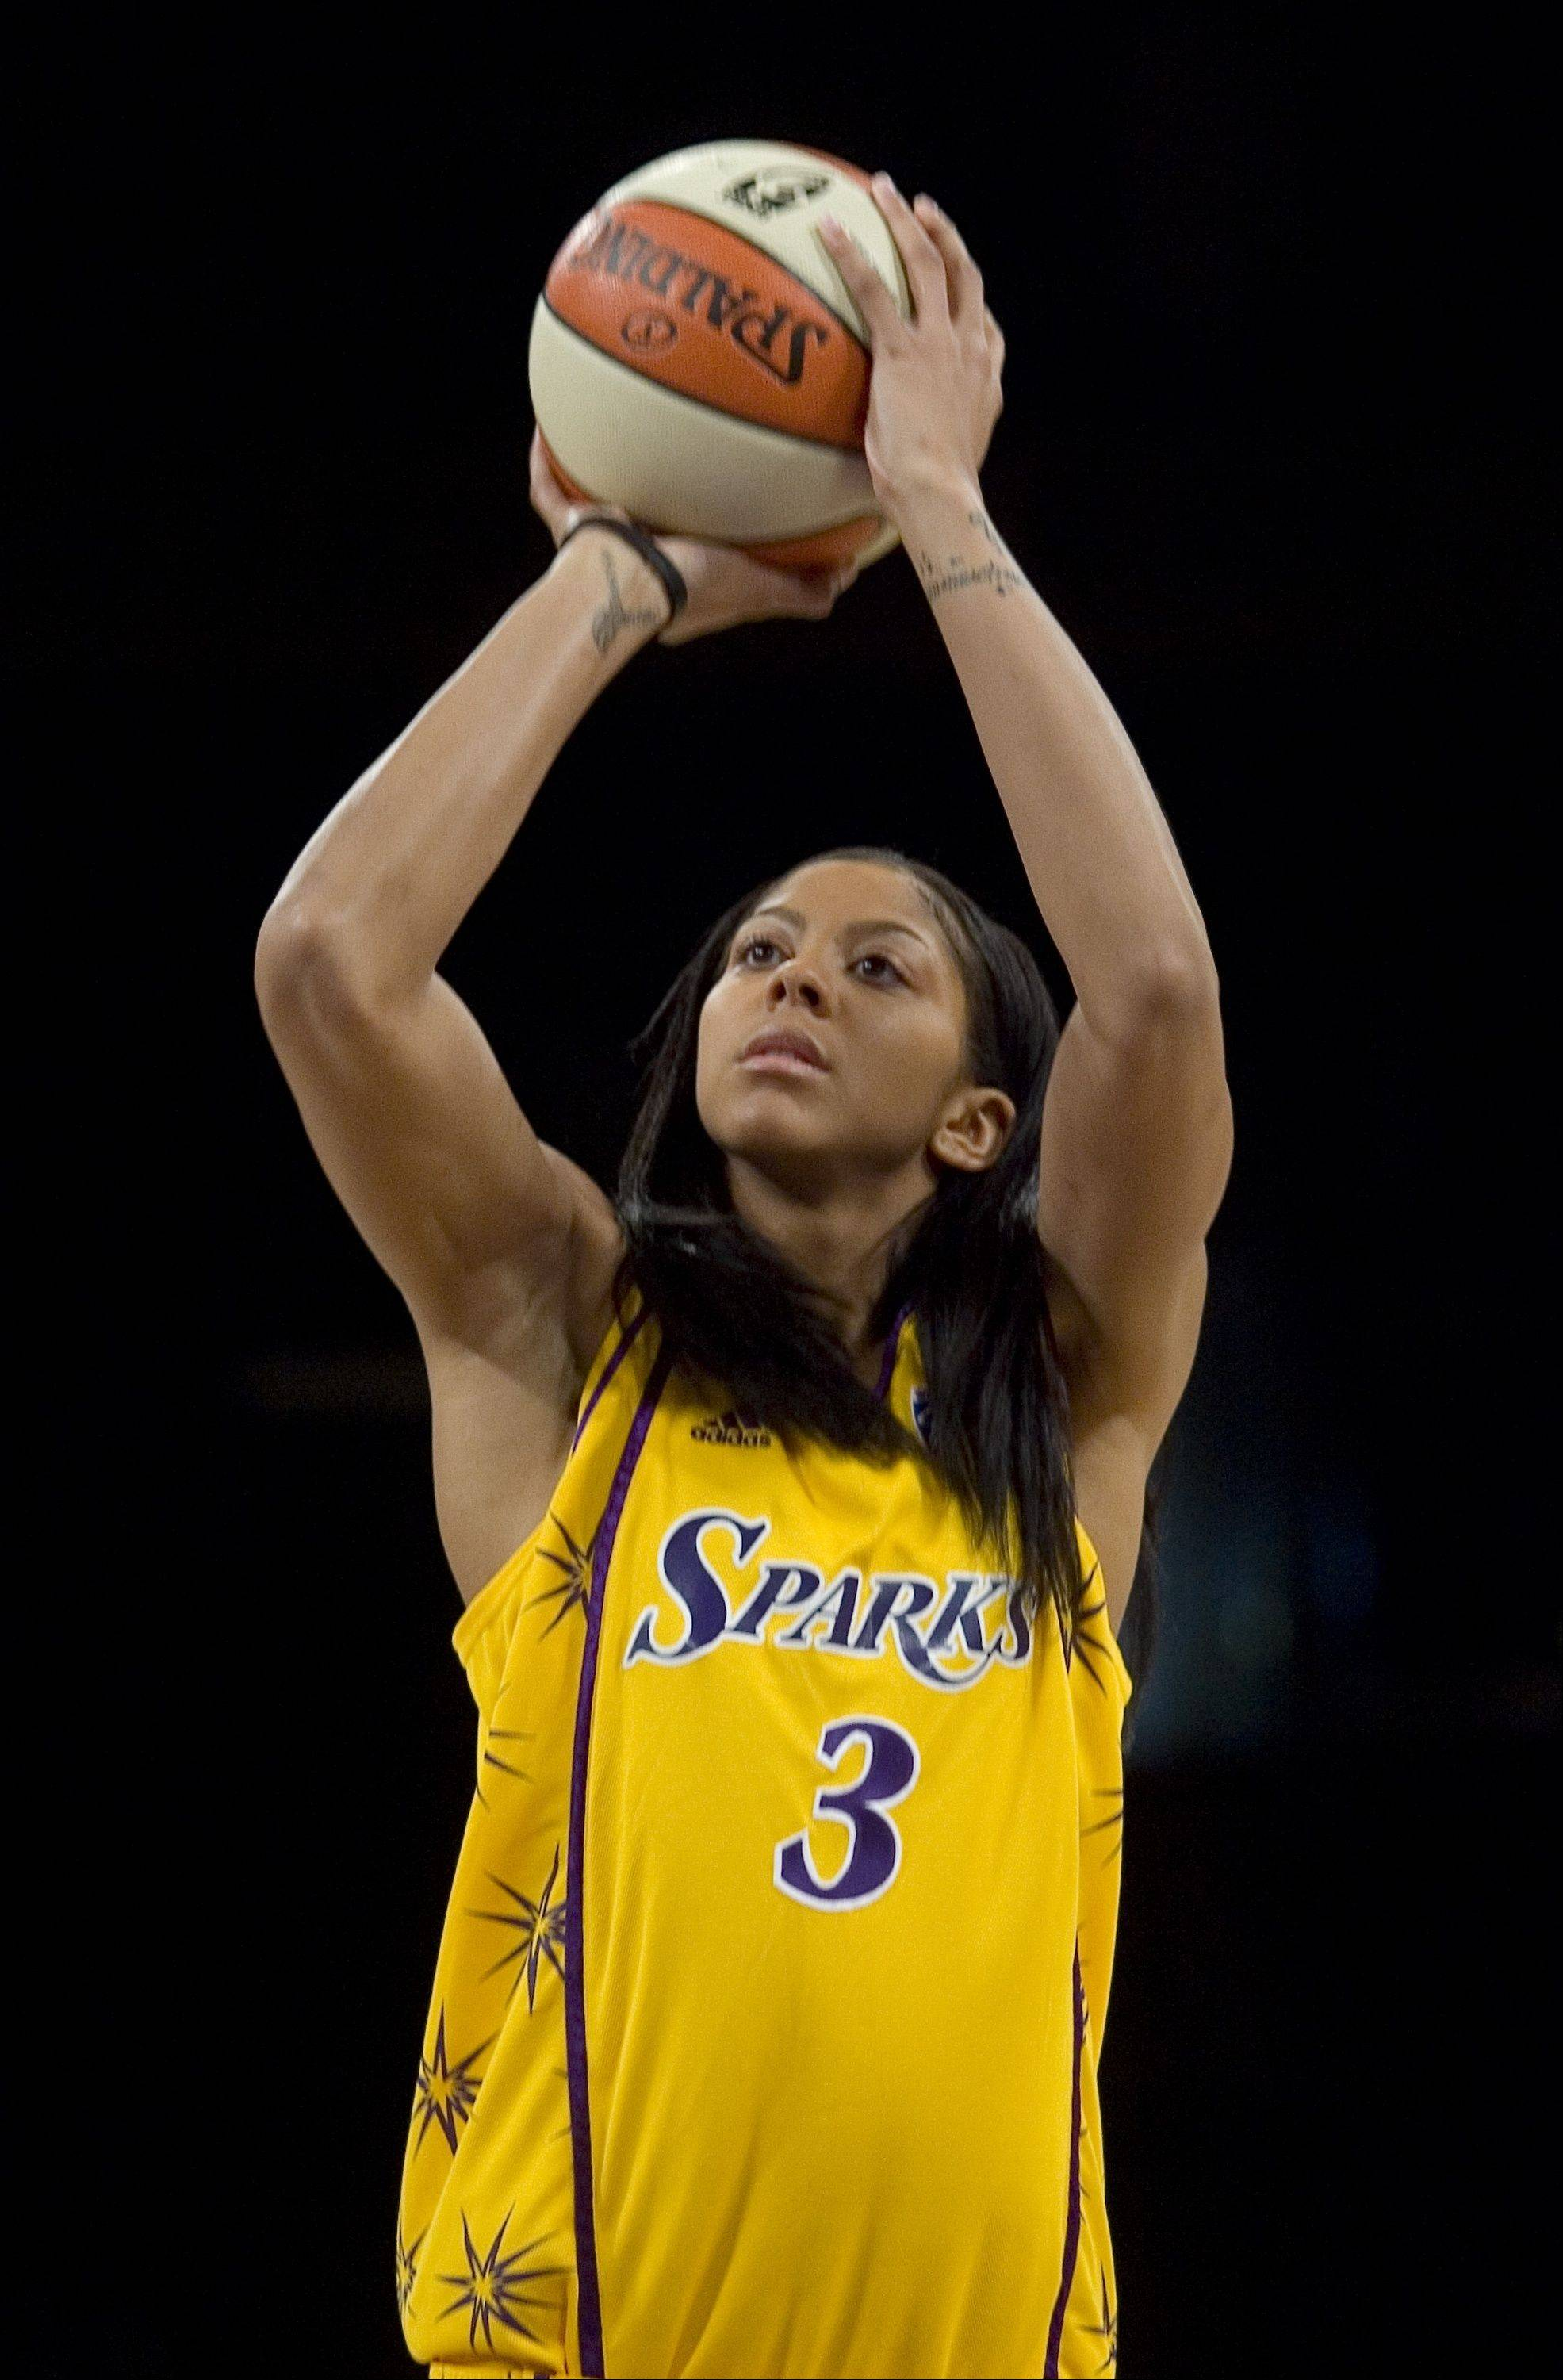 Naperville native Candace Parker, who plays for the WNBA's Los Angeles Sparks, was named Best WNBA player at Wednesday night's ESPY Awards in Los Angeles.